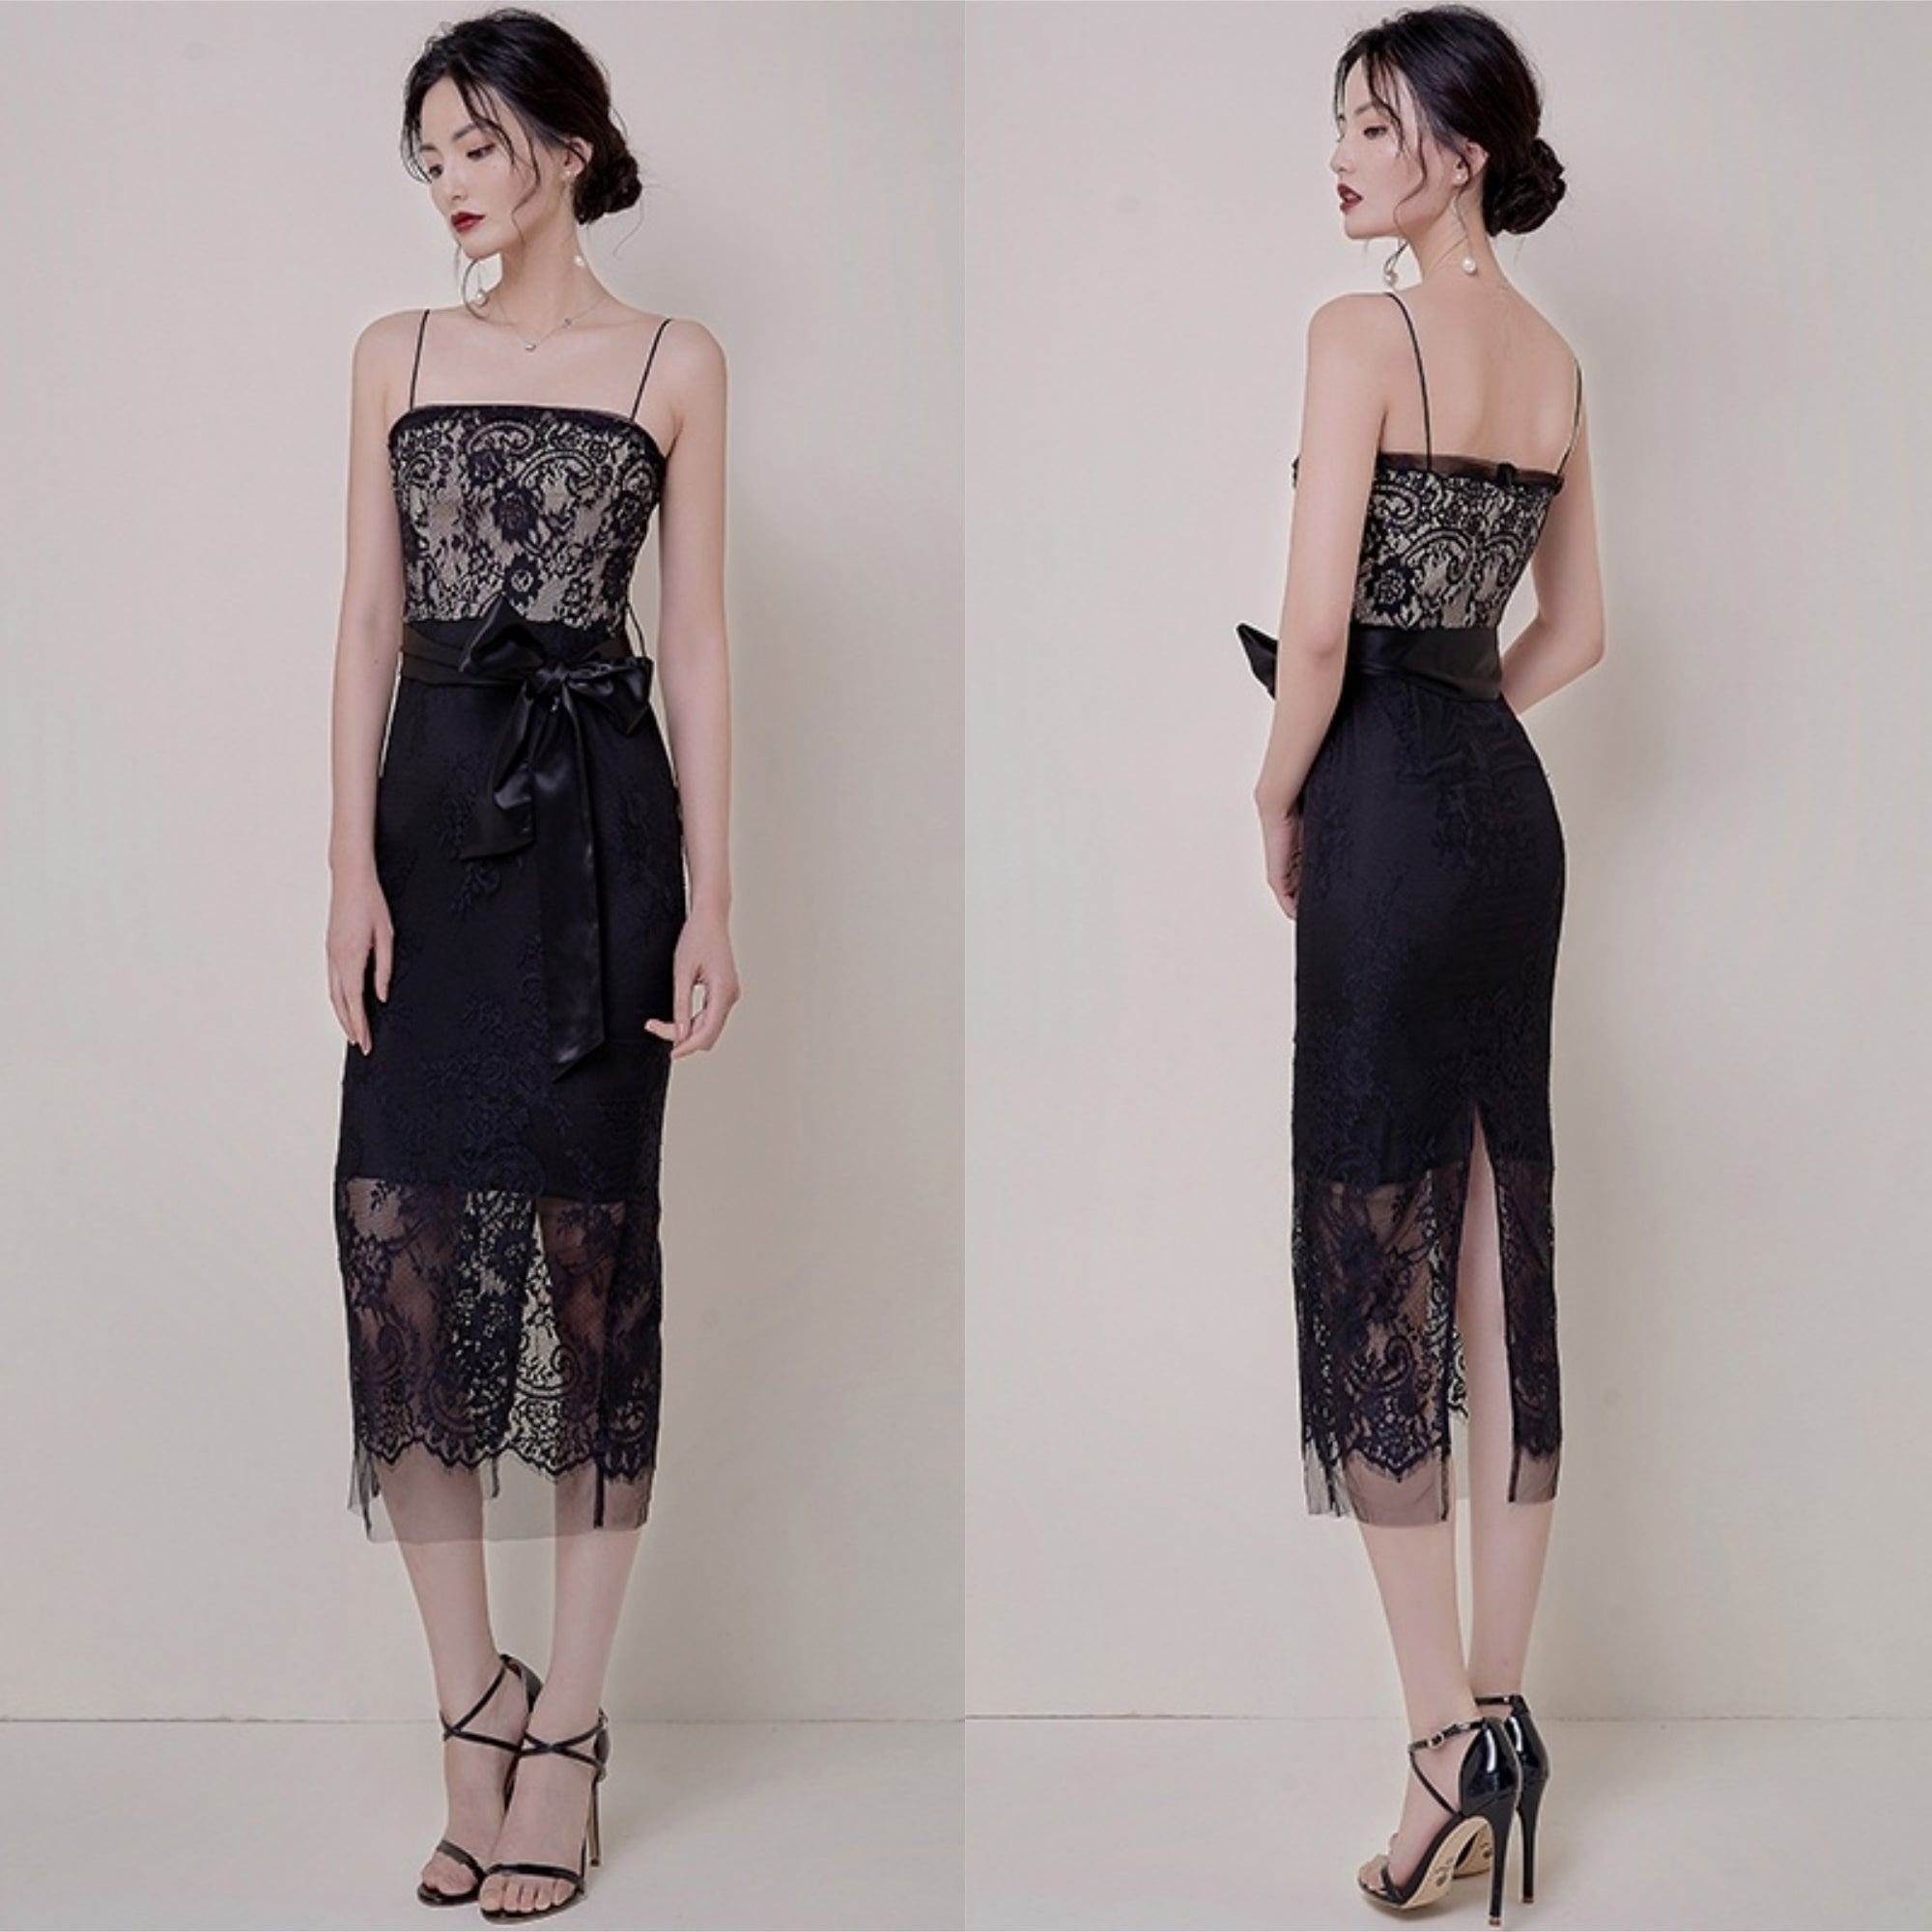 Luna Midnight Lace Midi Dress